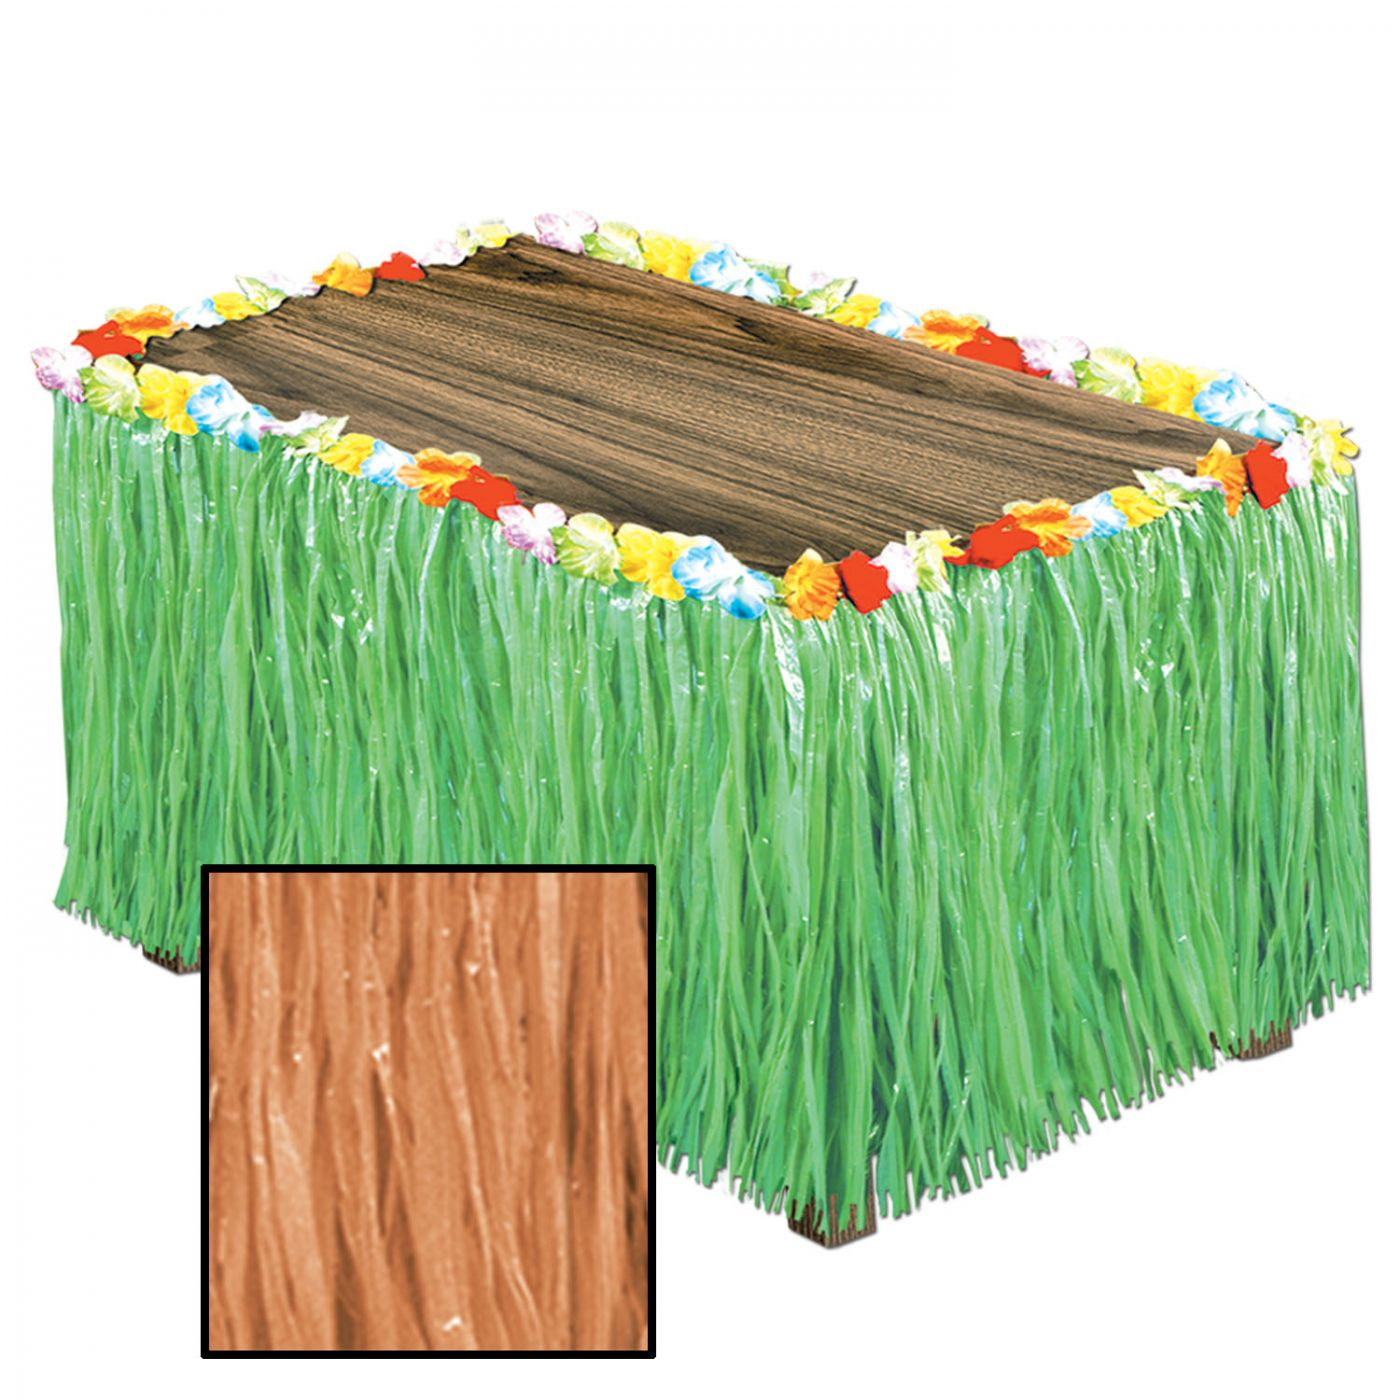 Image of Artificial Grass Table Skirting (6)